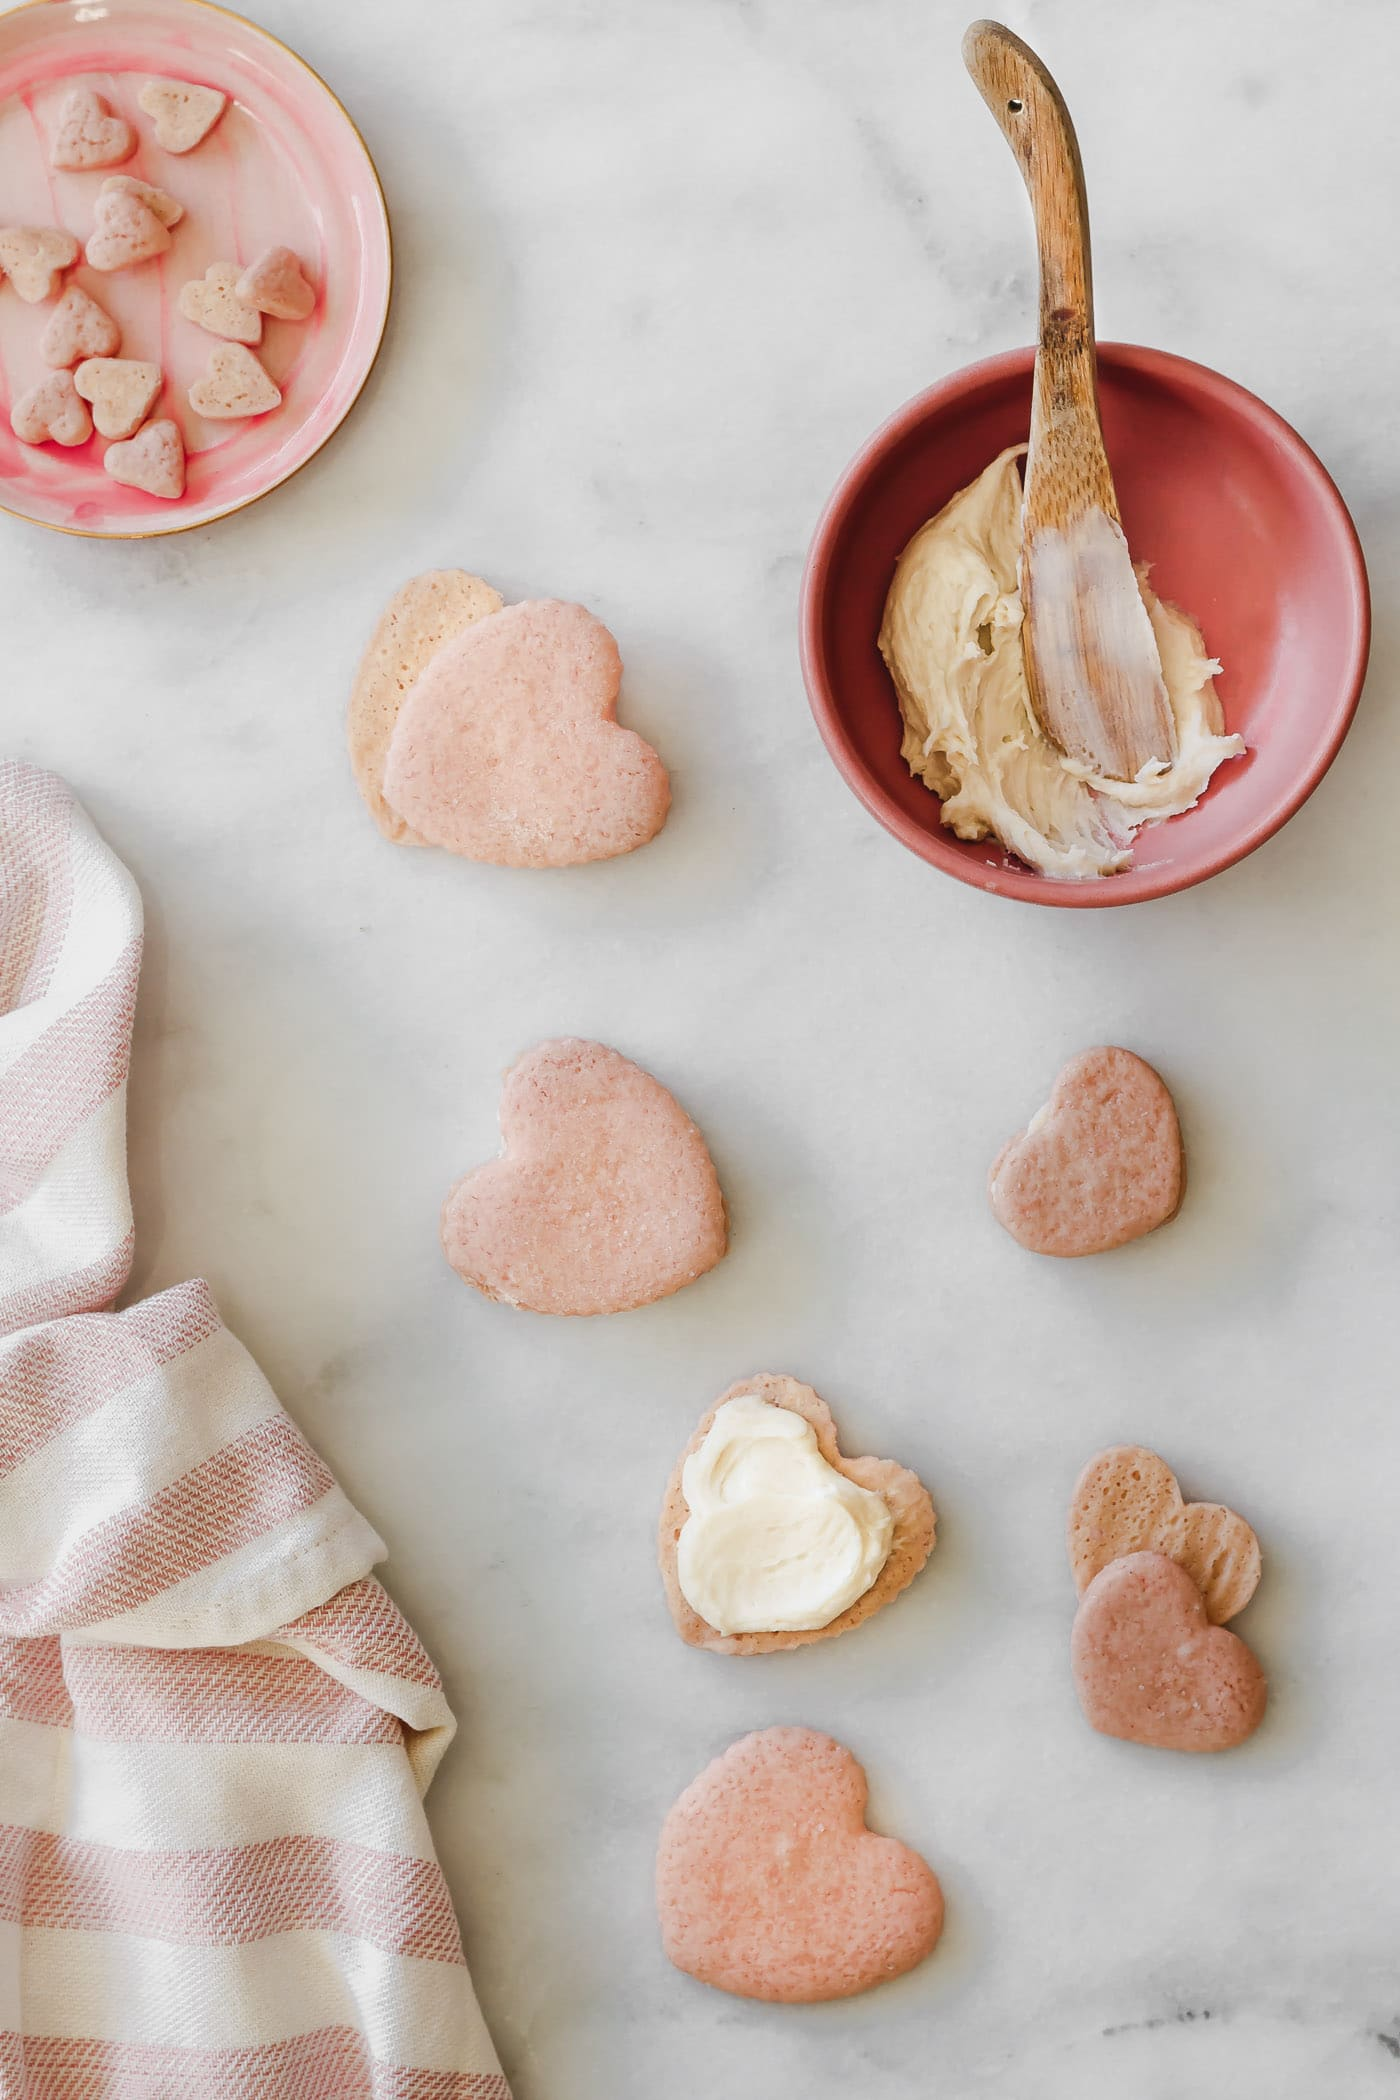 Heart Shaped Sandwich Cookies being filled with frosting